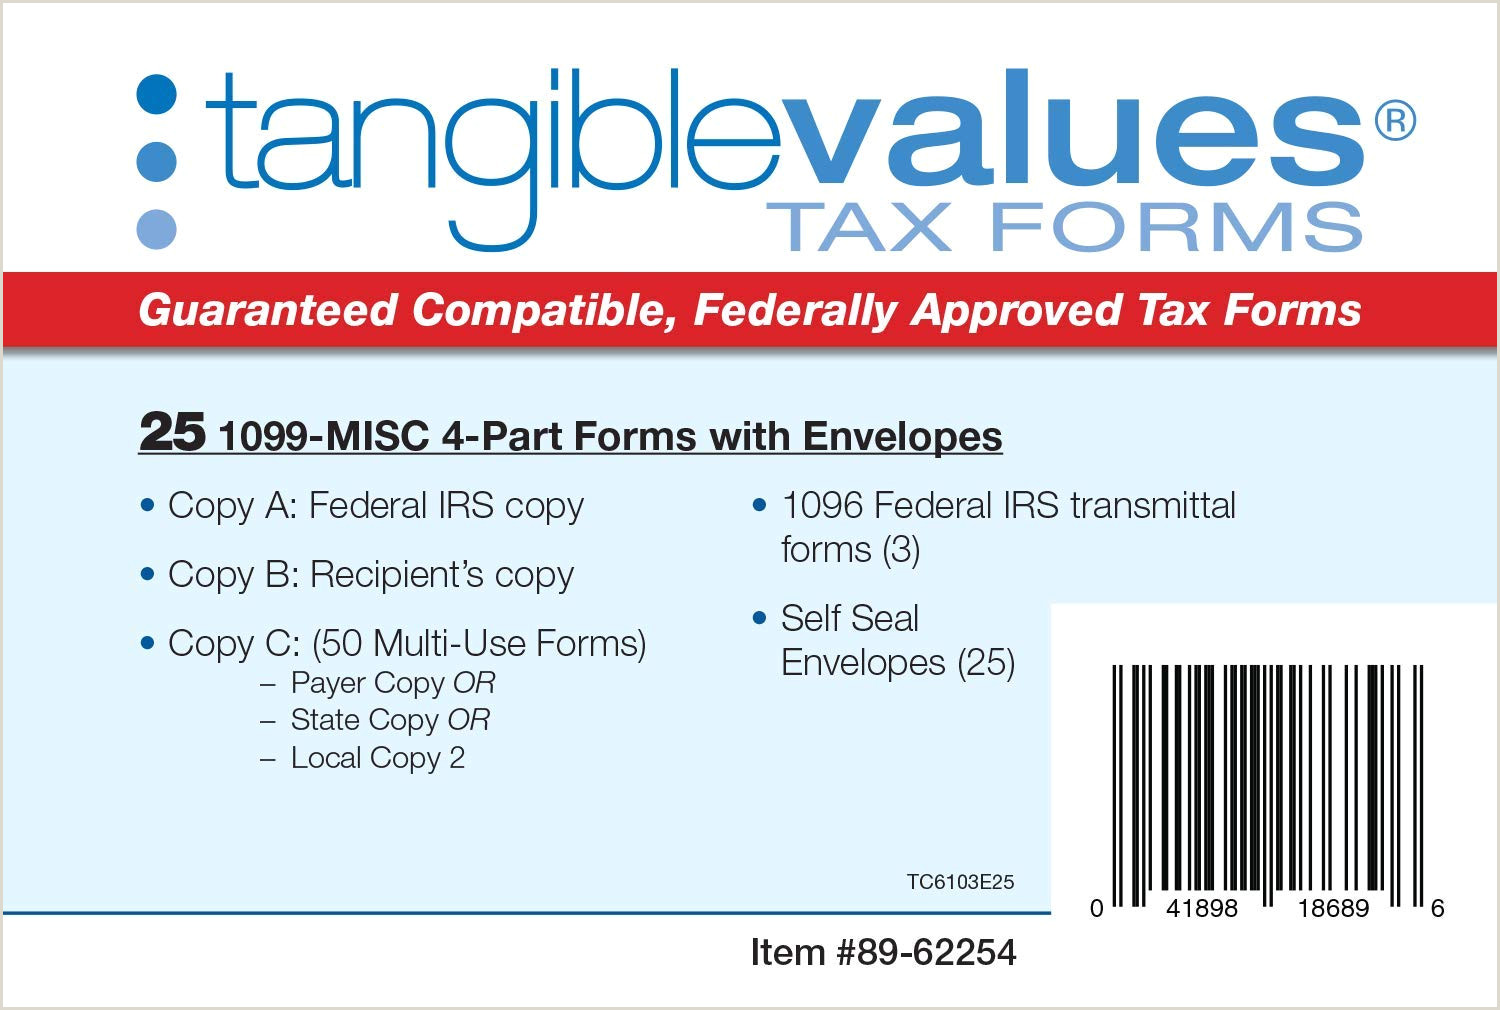 Tangible Values 1099 Misc Laser Forms 4 Part Kit with Env for 25 Vendors 3 Form 1096 s 2019